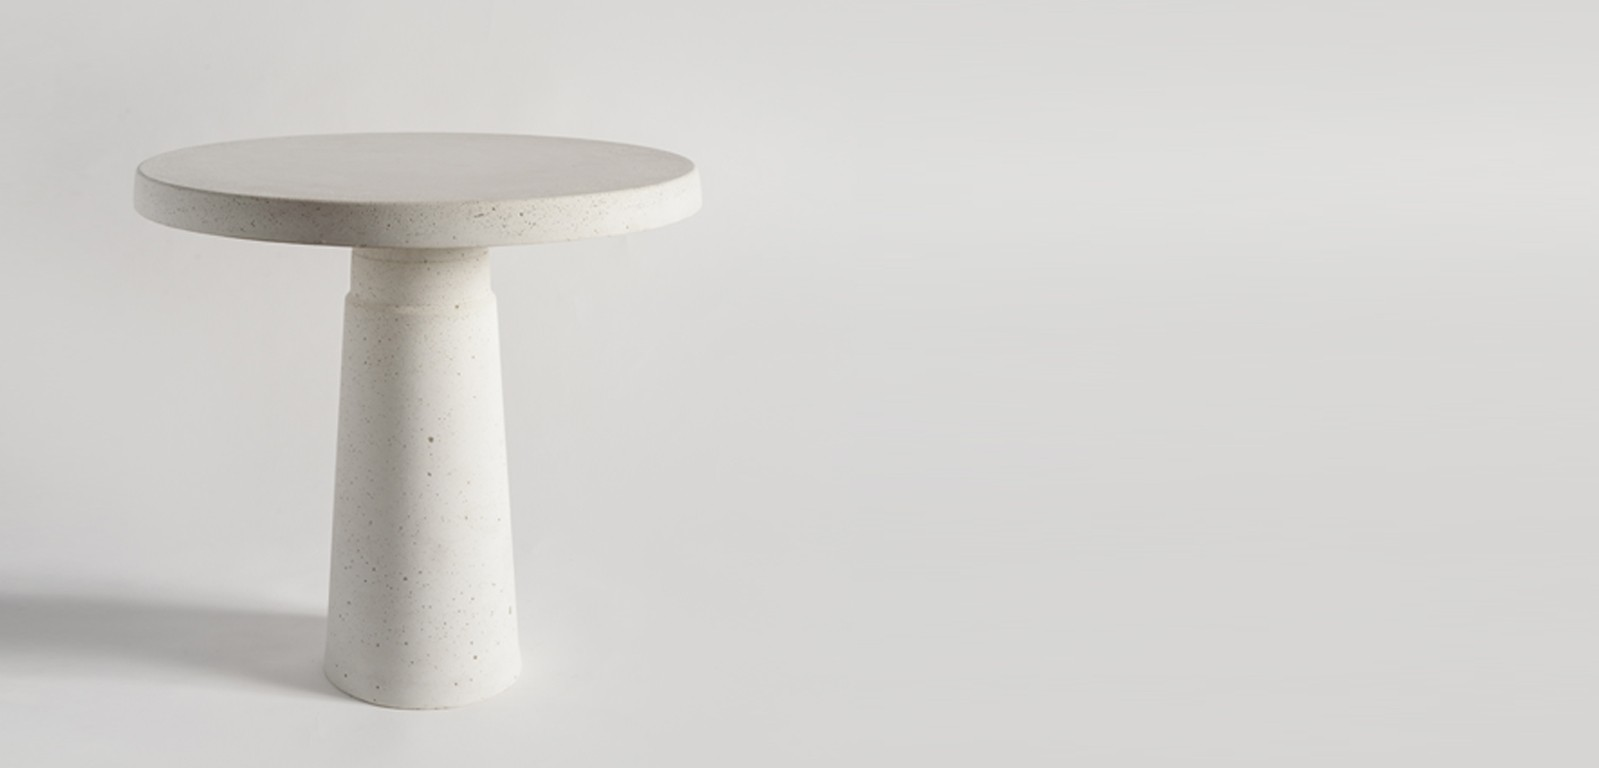 PIN-side-accent-coffee-tables-minimal-white-black-concrete-handmade-luxury-alentes